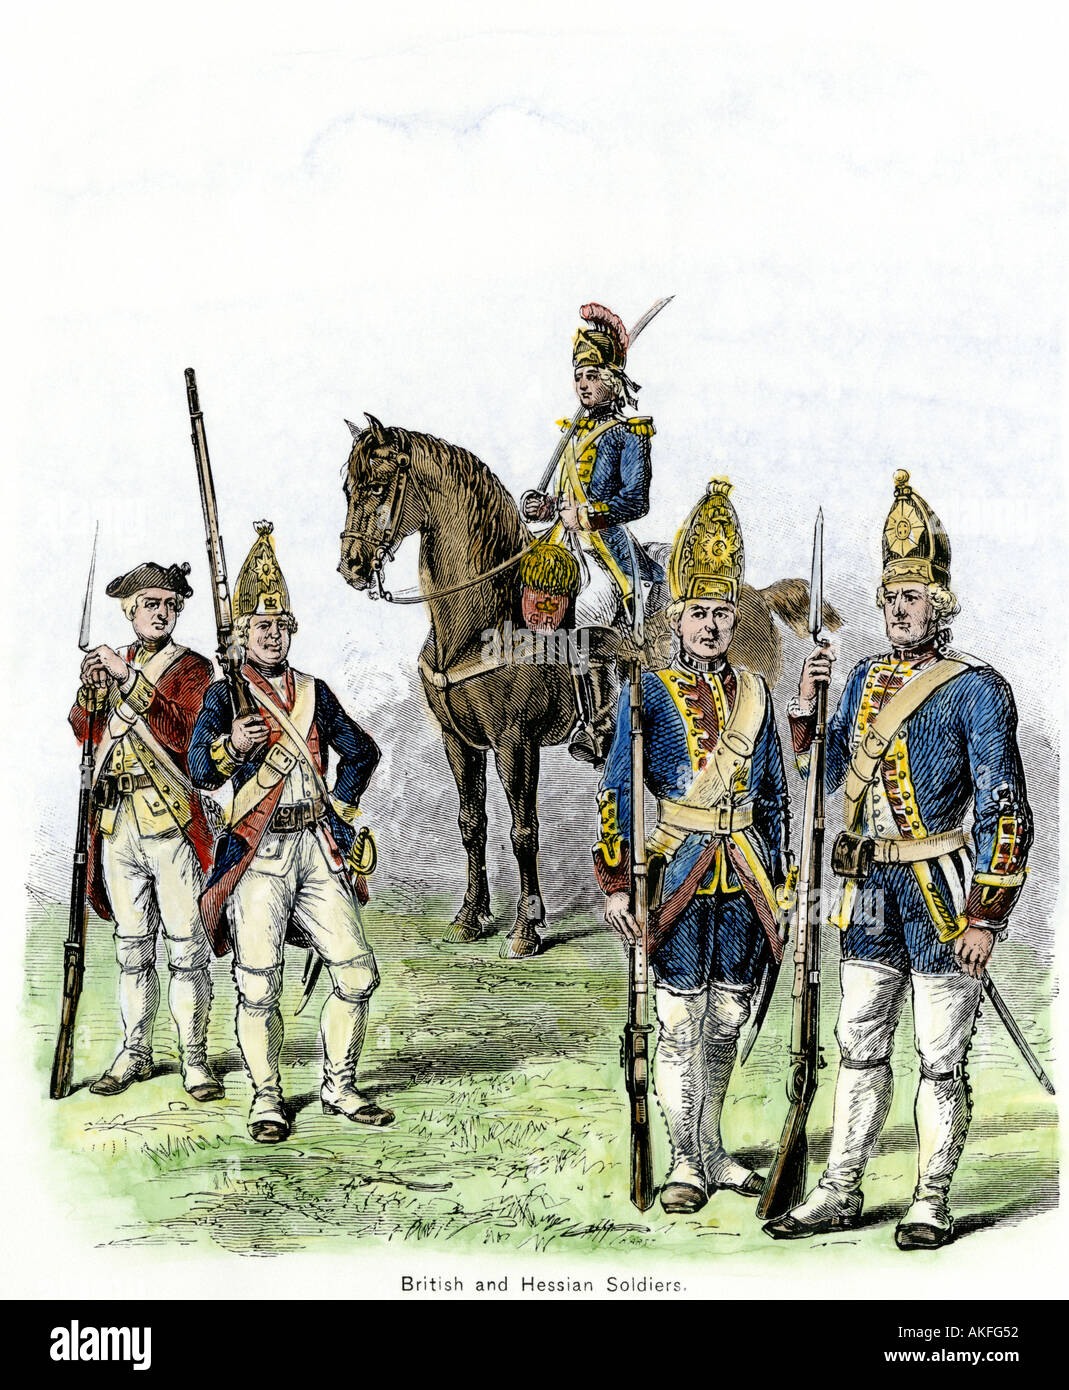 British and Hessian soldiers in the American Revolution. Hand-colored woodcut - Stock Image